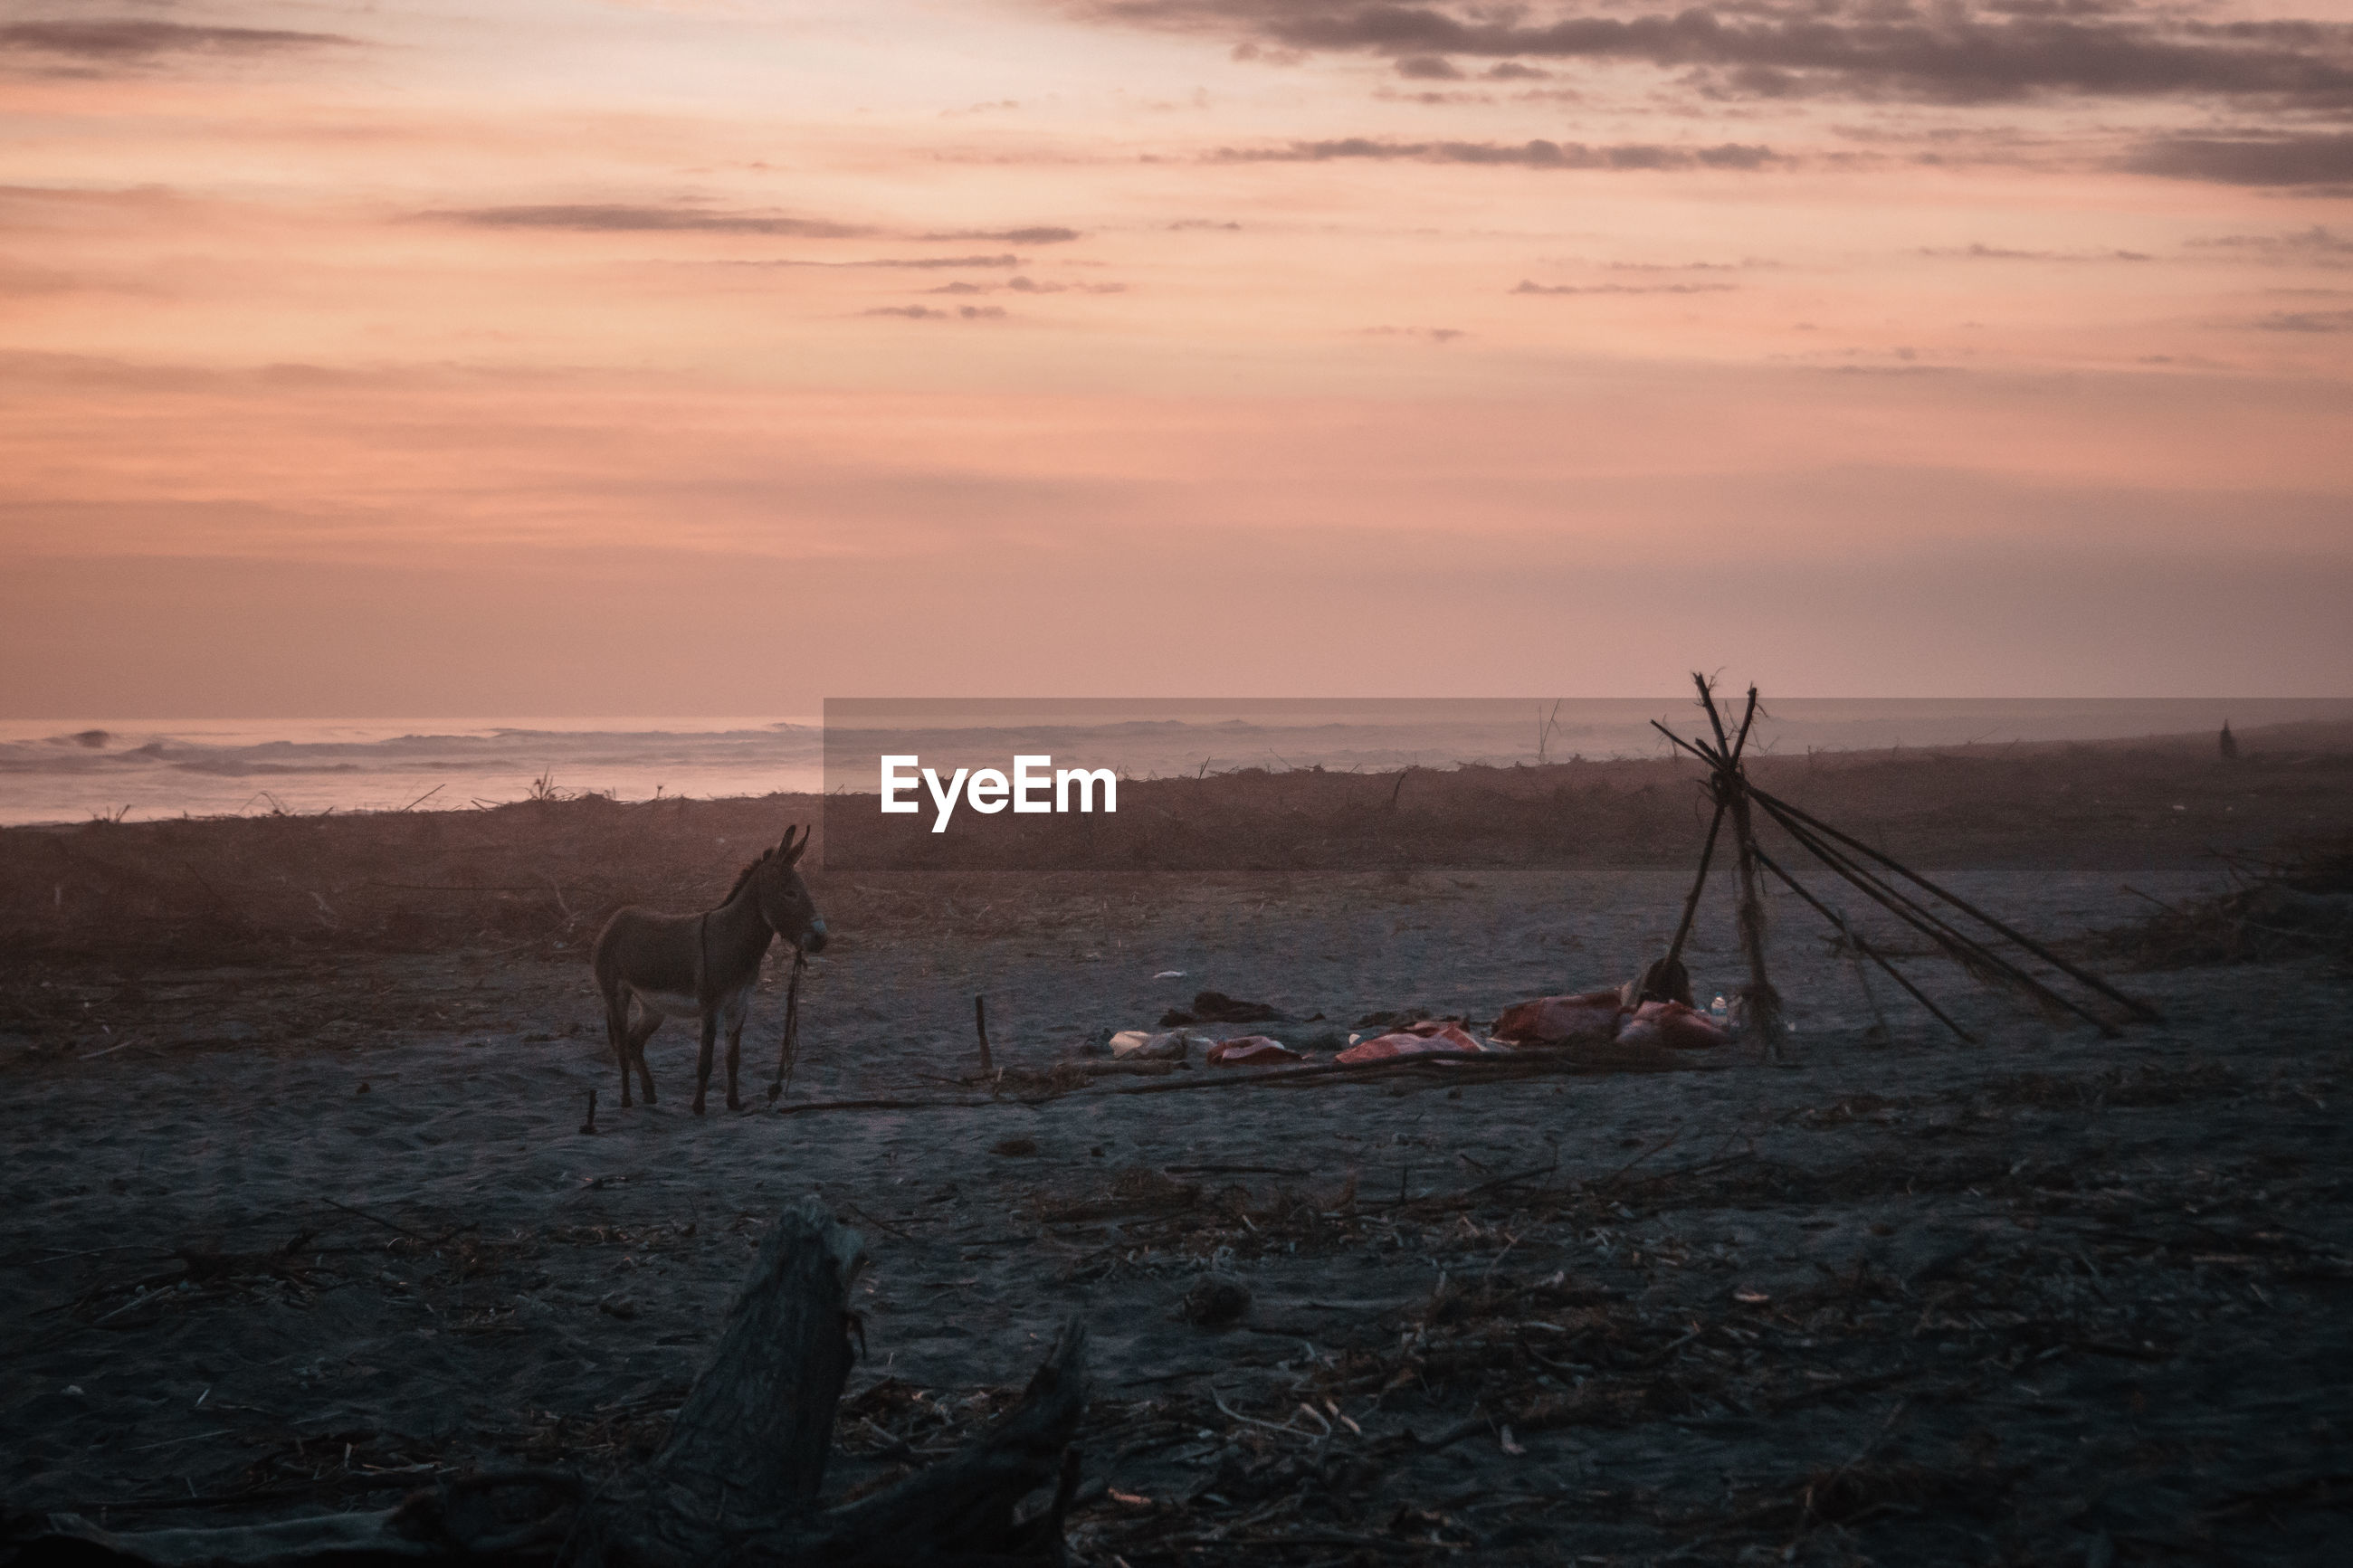 Donkey standing on land during sunset